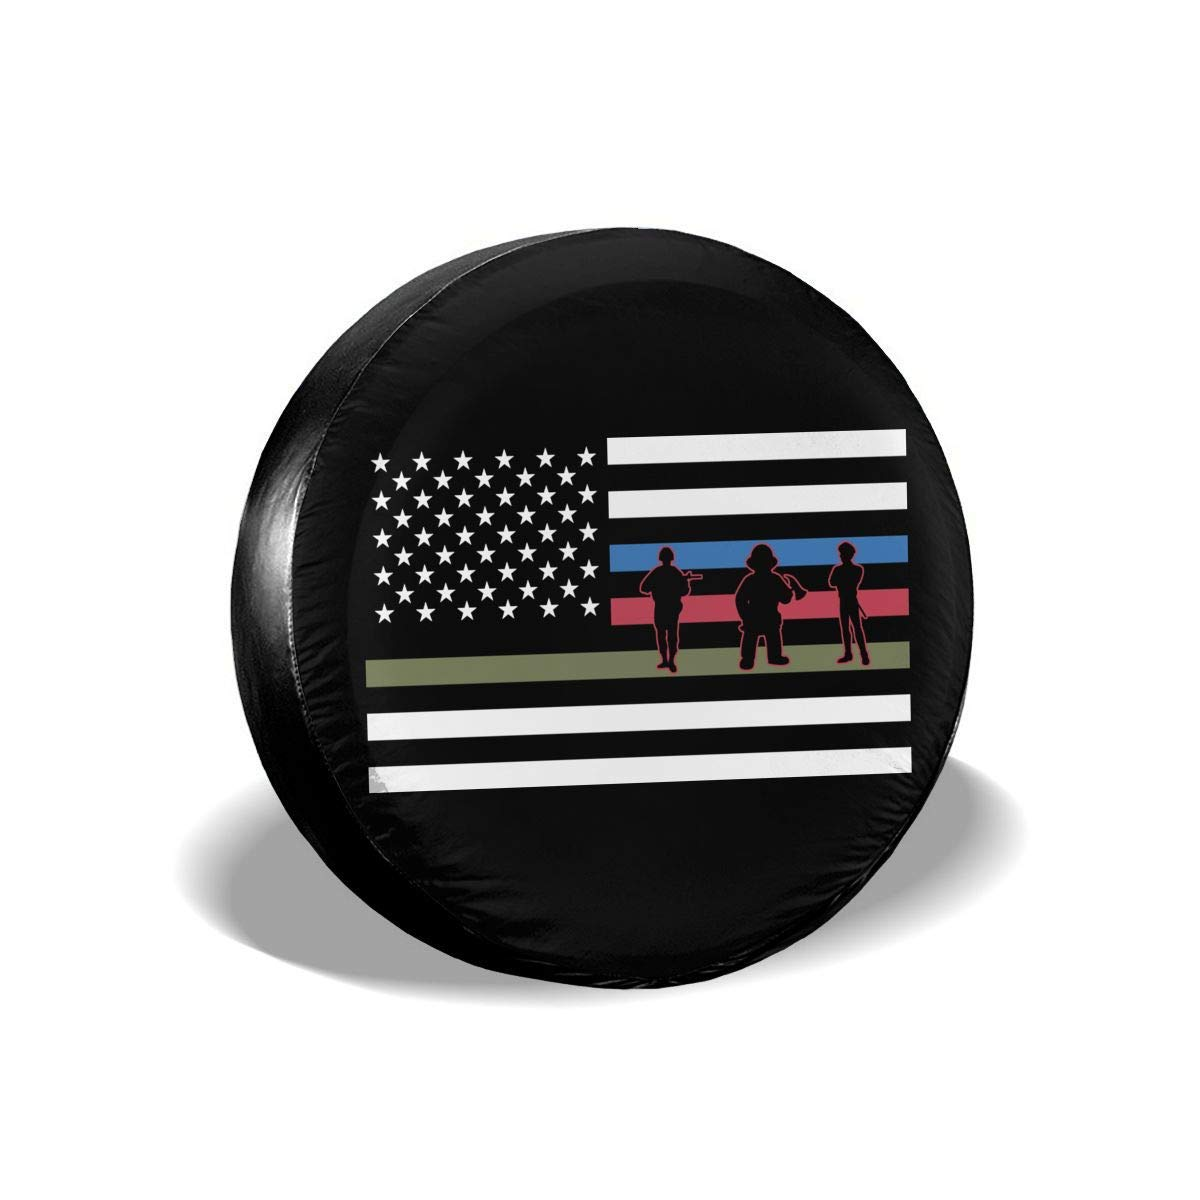 Tire Covers HappyToiletLidCoverX Thin Blue Line American Flag Firefighter Police Military Spare Wheel Tire Cover Funny Waterproof Tire Protectors Novelty 14 15 16 17 INCH